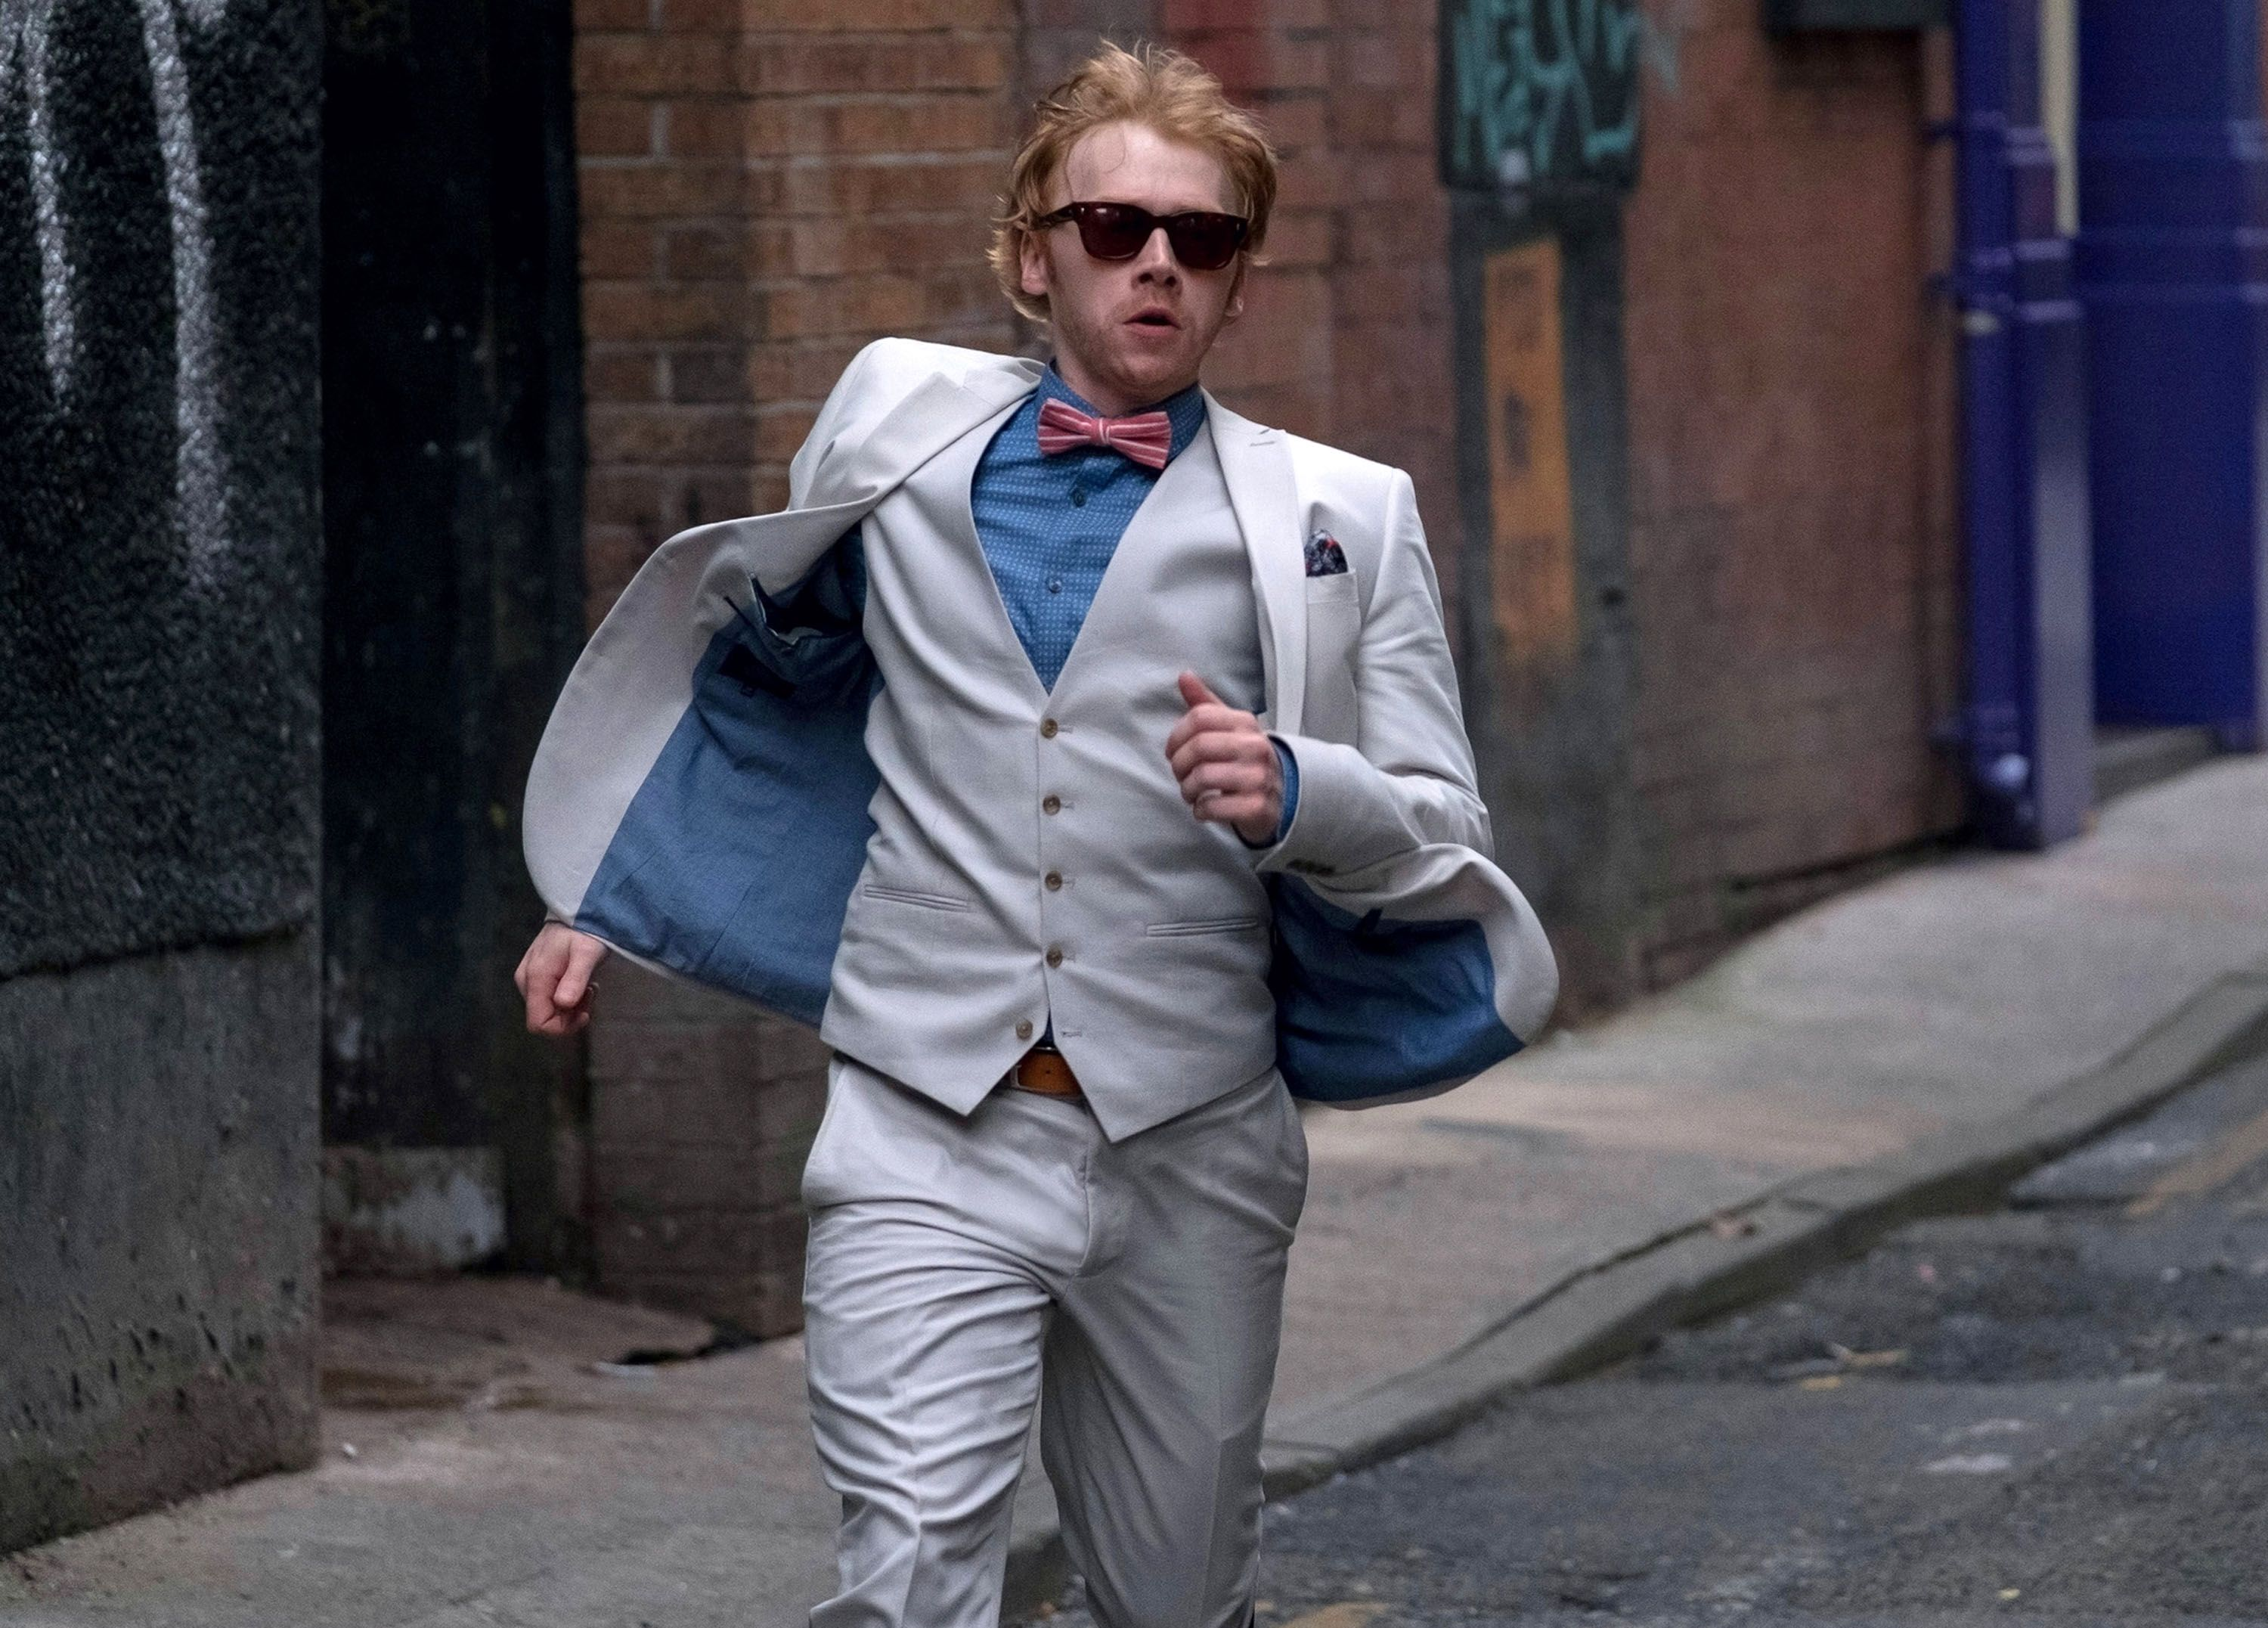 Snatch: Rupert Grint on Starring in the Crackle Series ... Rupert Grint Snatch